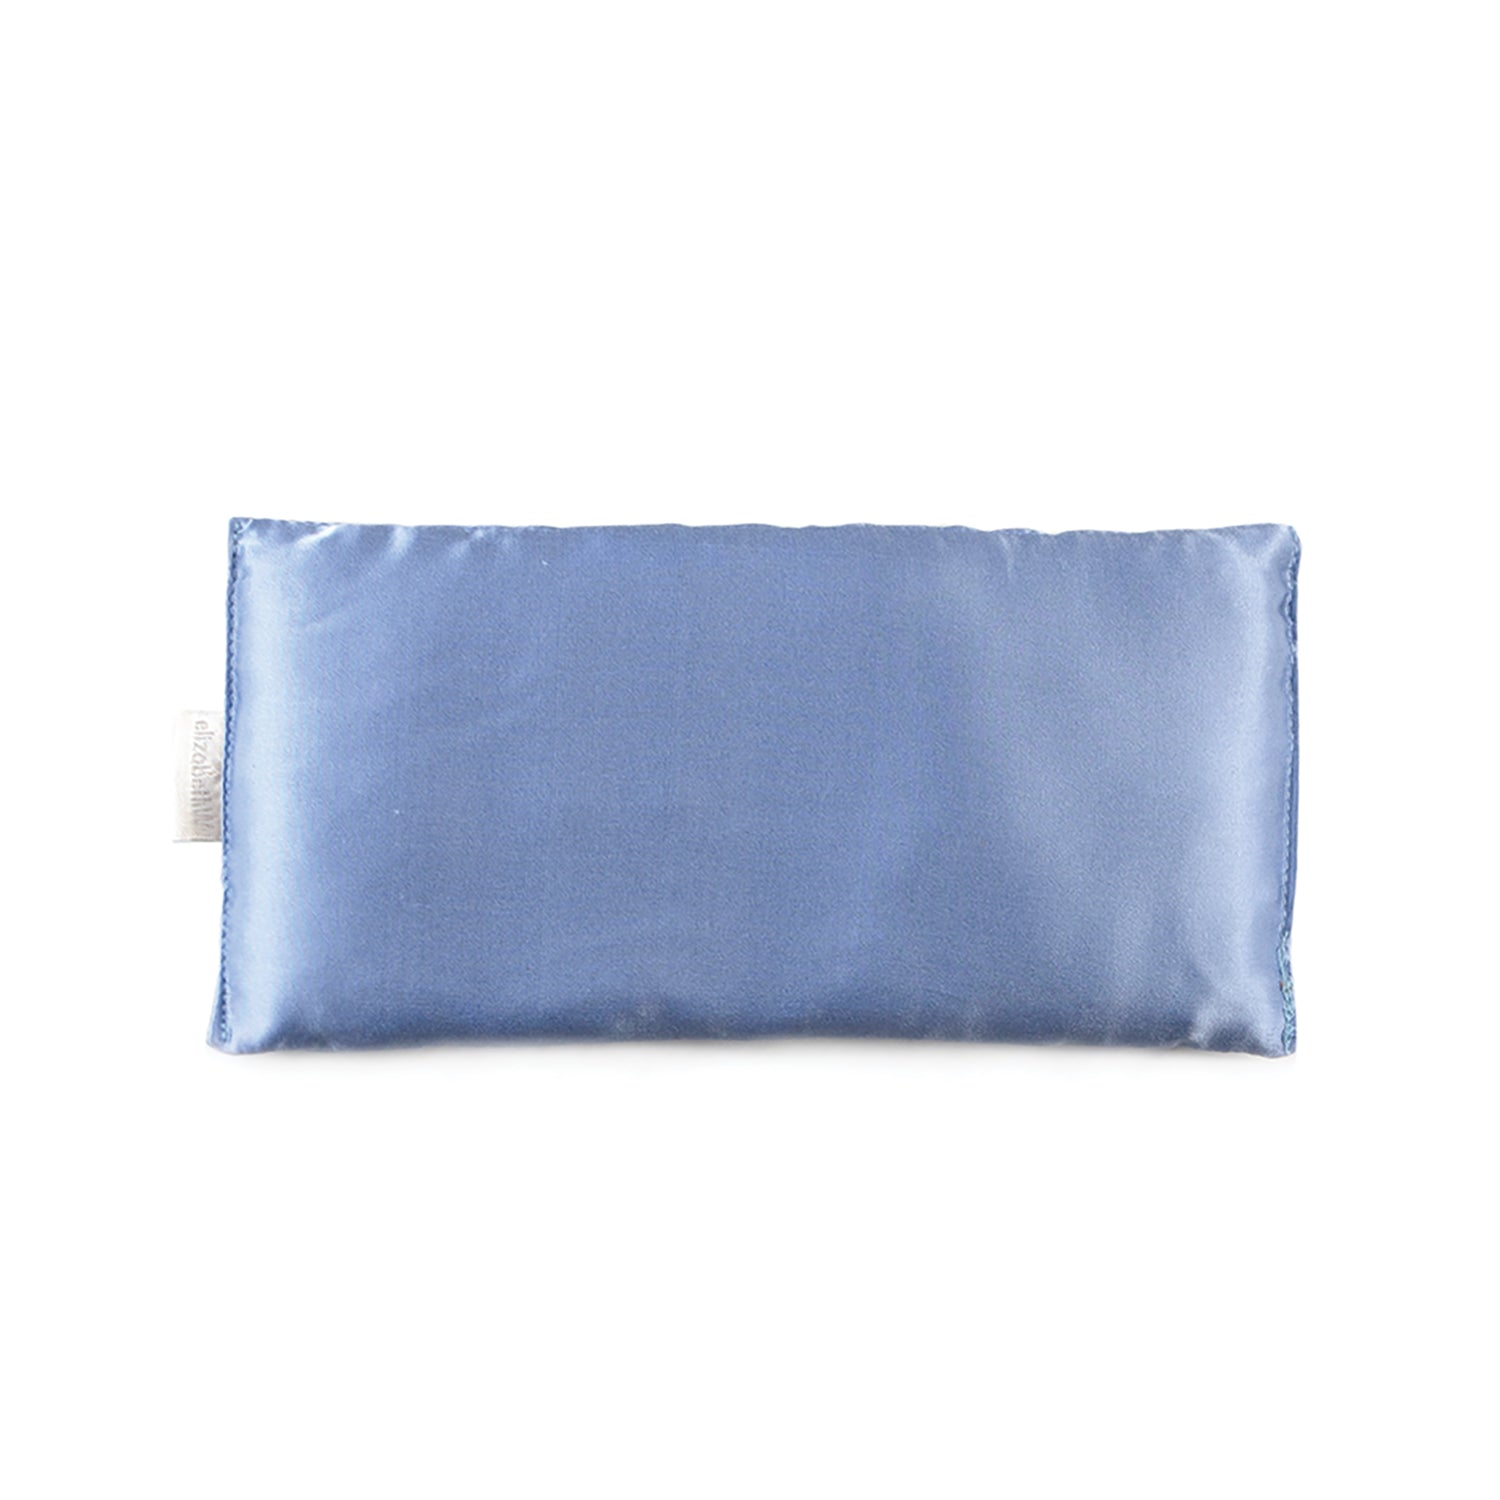 Periwinkle Eye Pillow